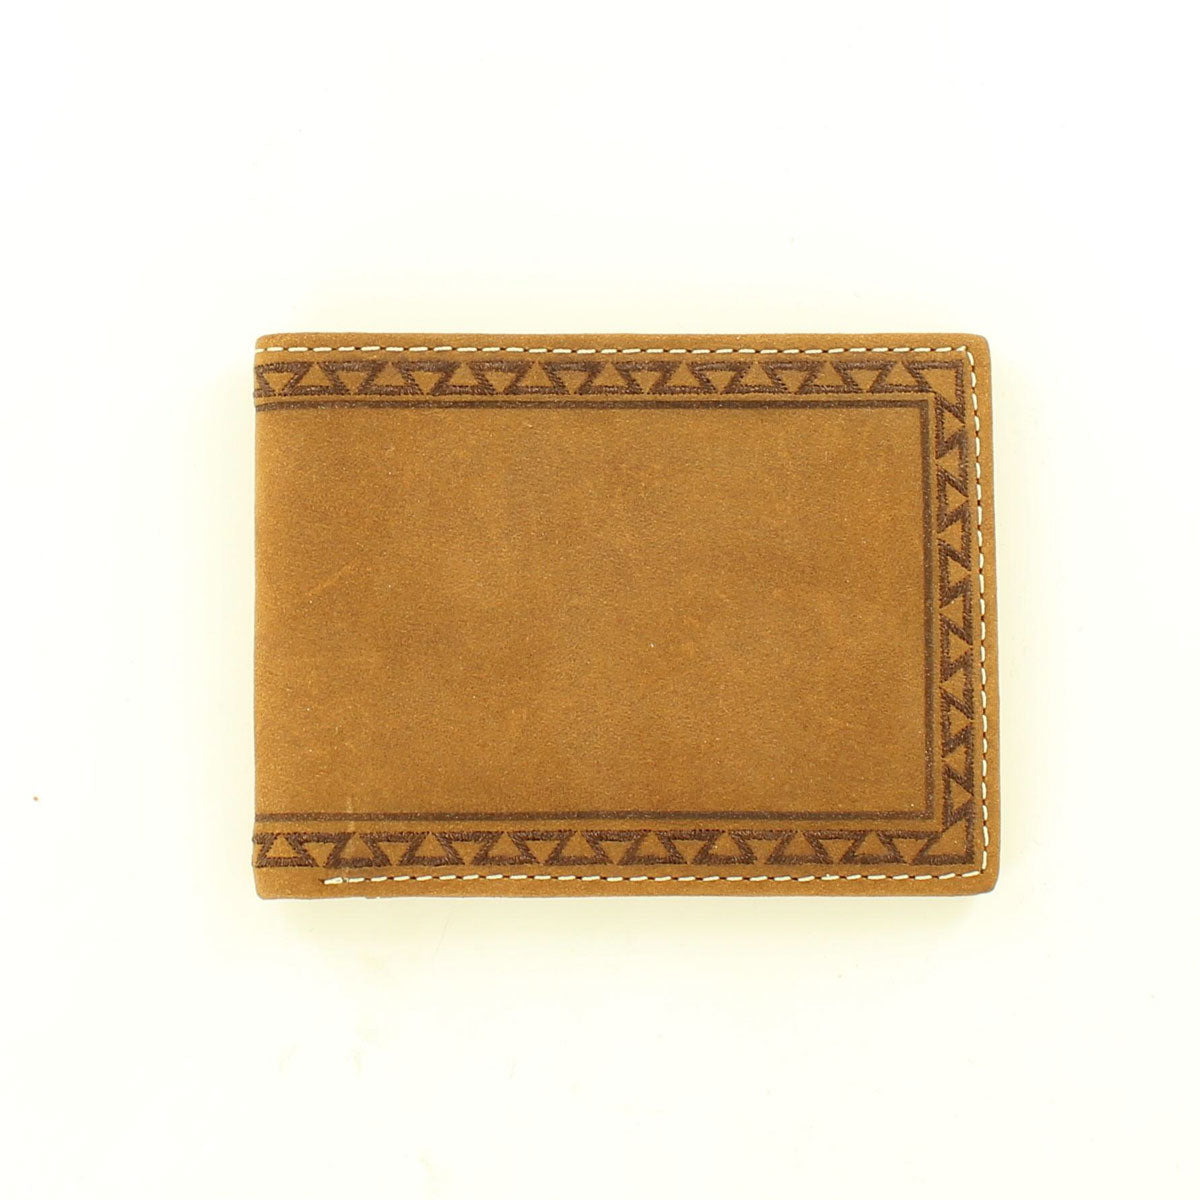 Ariat Bifold Aztec Embroidered Edge Medium Brown Leather Wallet